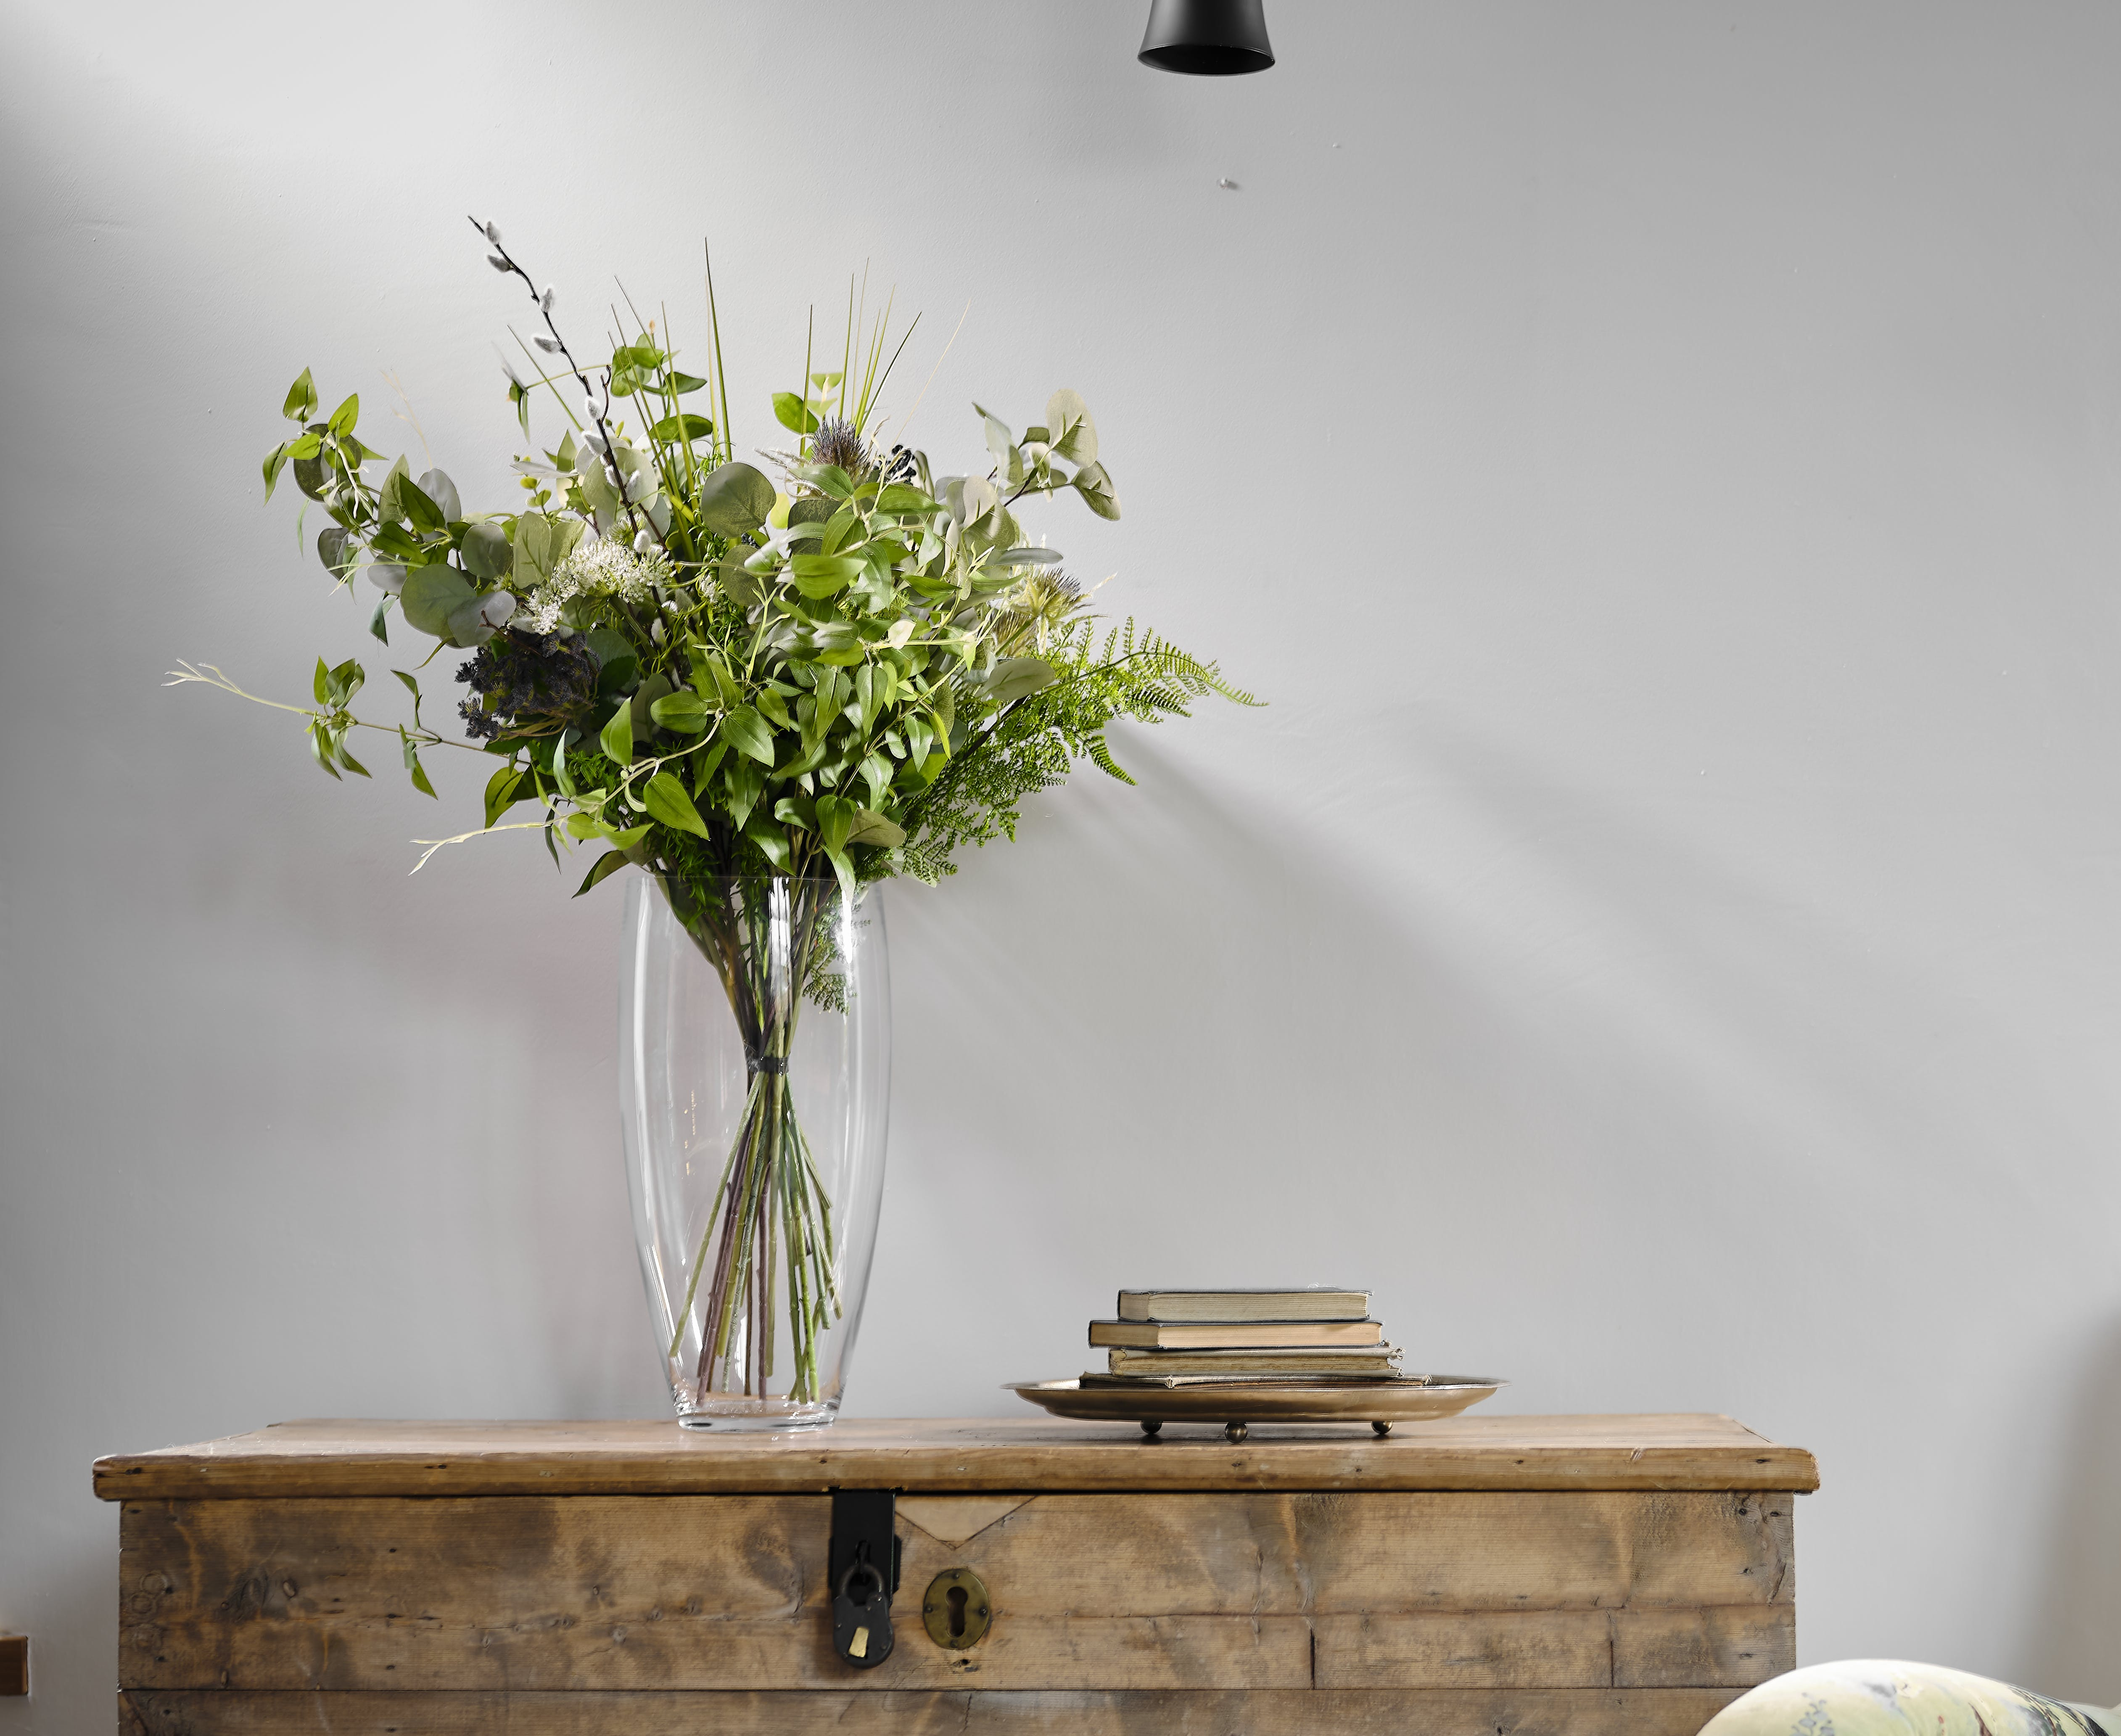 Fauxliage (foliage) artificial bouquet on chest table